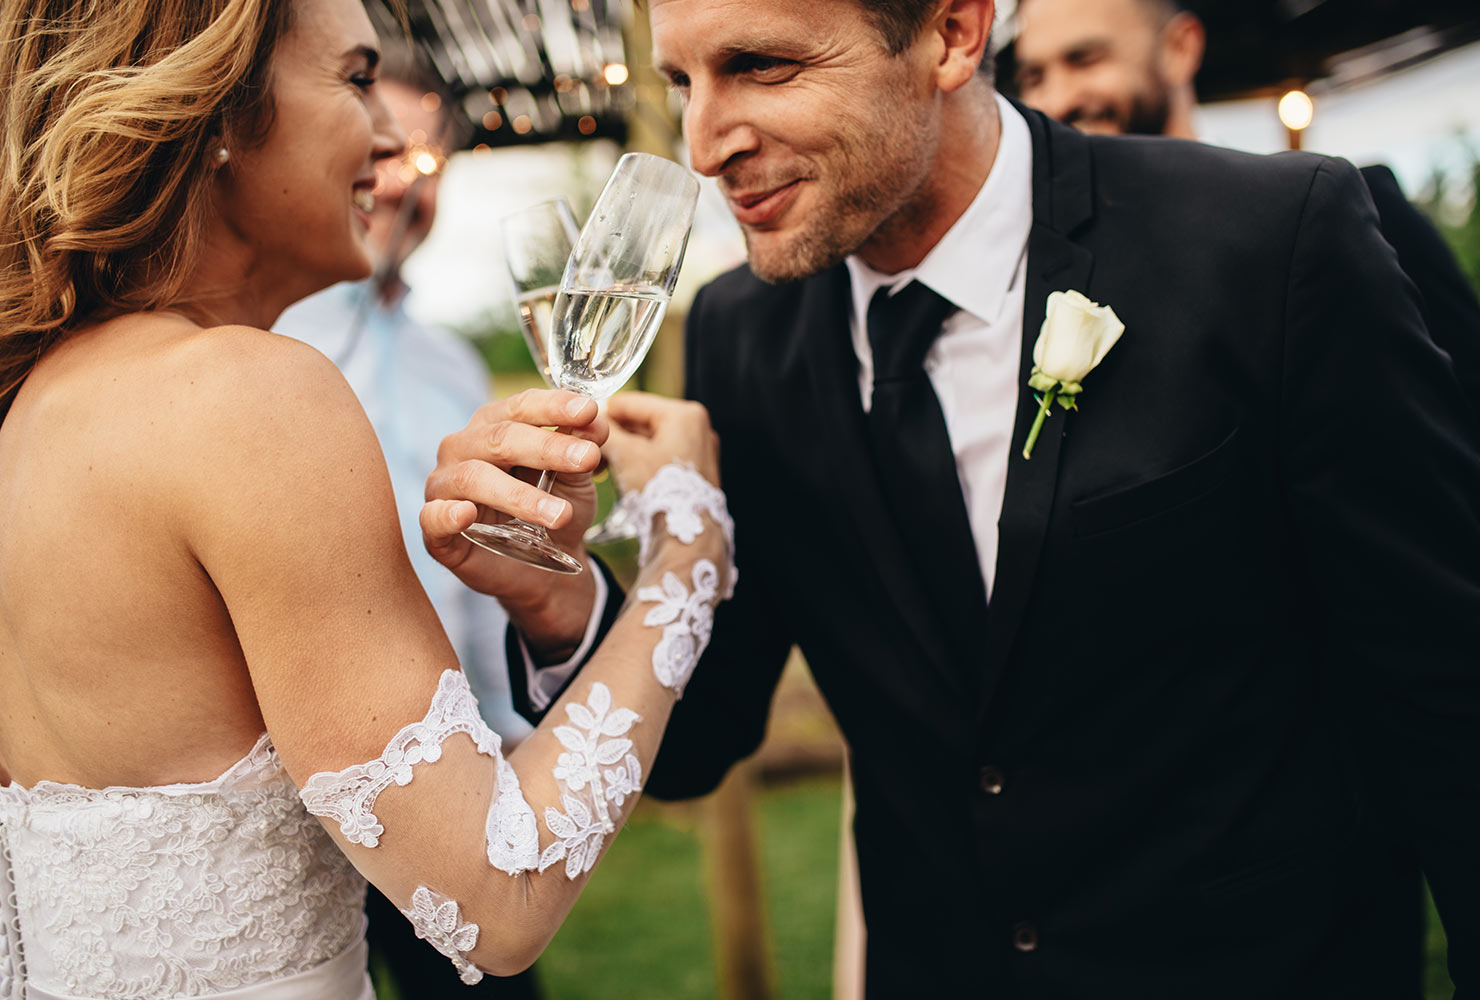 A bridge and groom sip champagne with the arms interlocked. arms